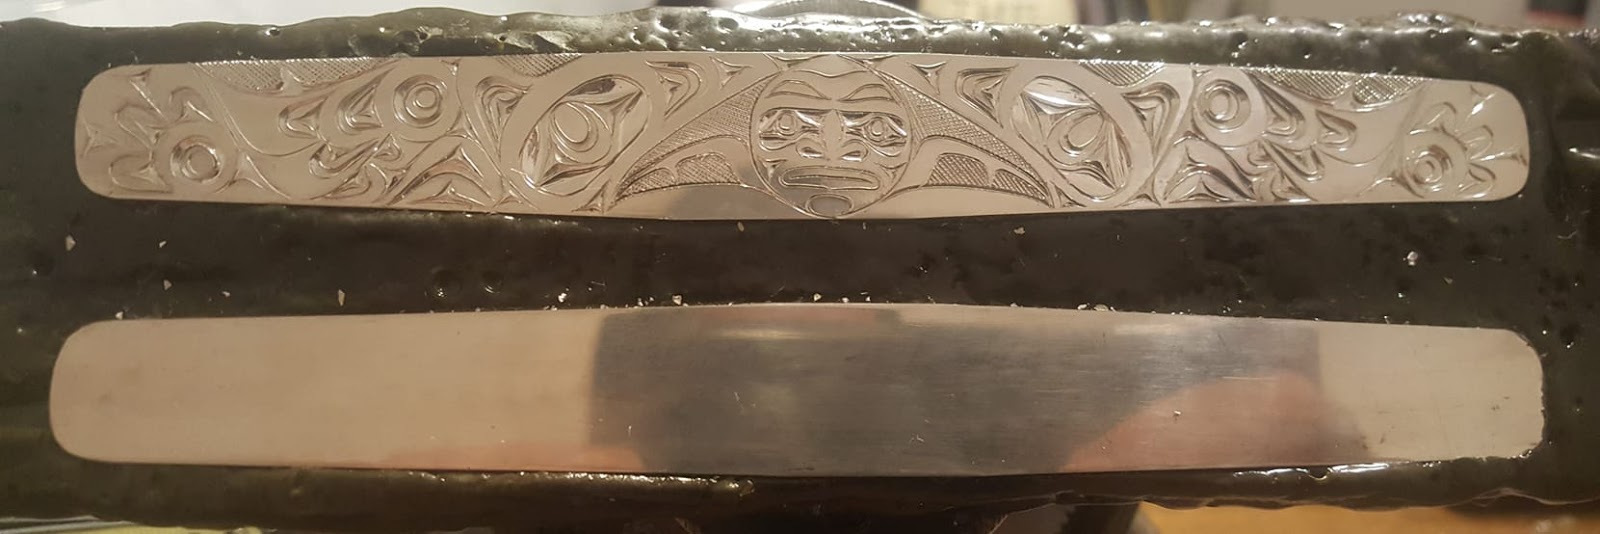 This beautiful work in progress was created by the well known Haida artist James Sawyer. It is 2 inches wide by 7 inches long and features two ravens stealing the moon and is carved in sterling silver.